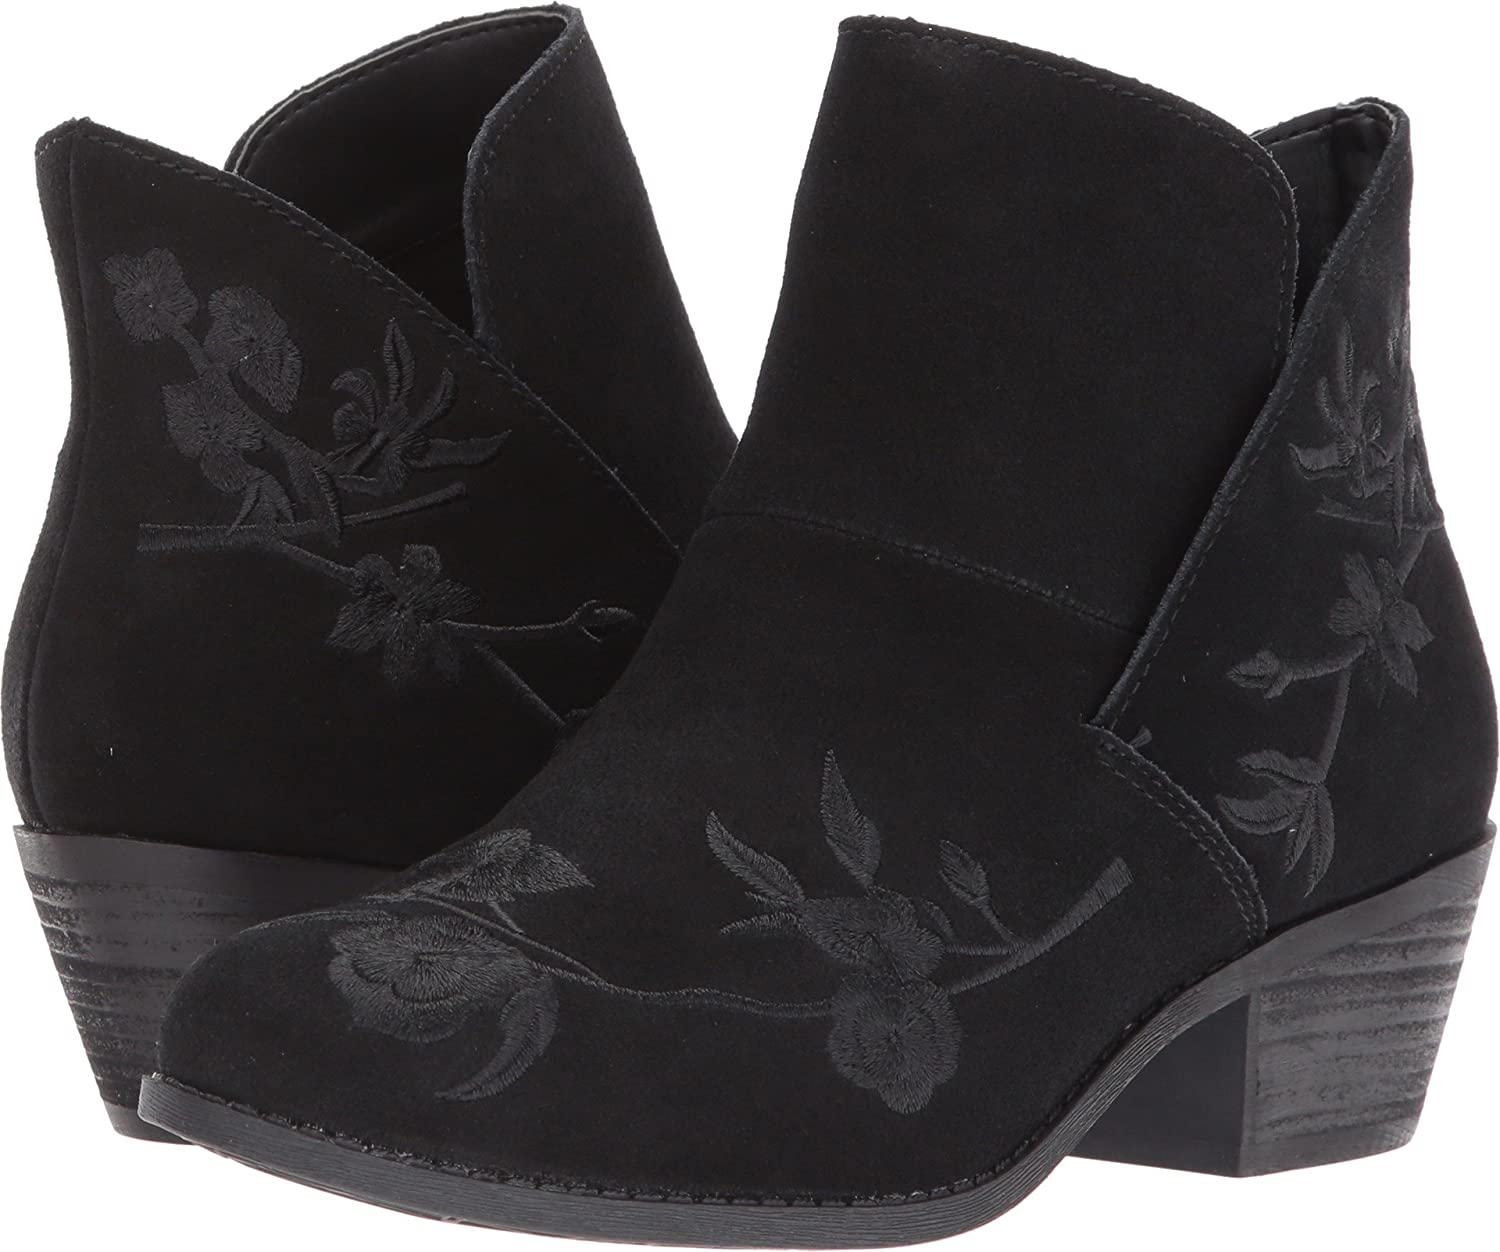 Black Floral Suede Me Too Womens Zena 14 Leather Almond Toe Ankle Fashion Boots